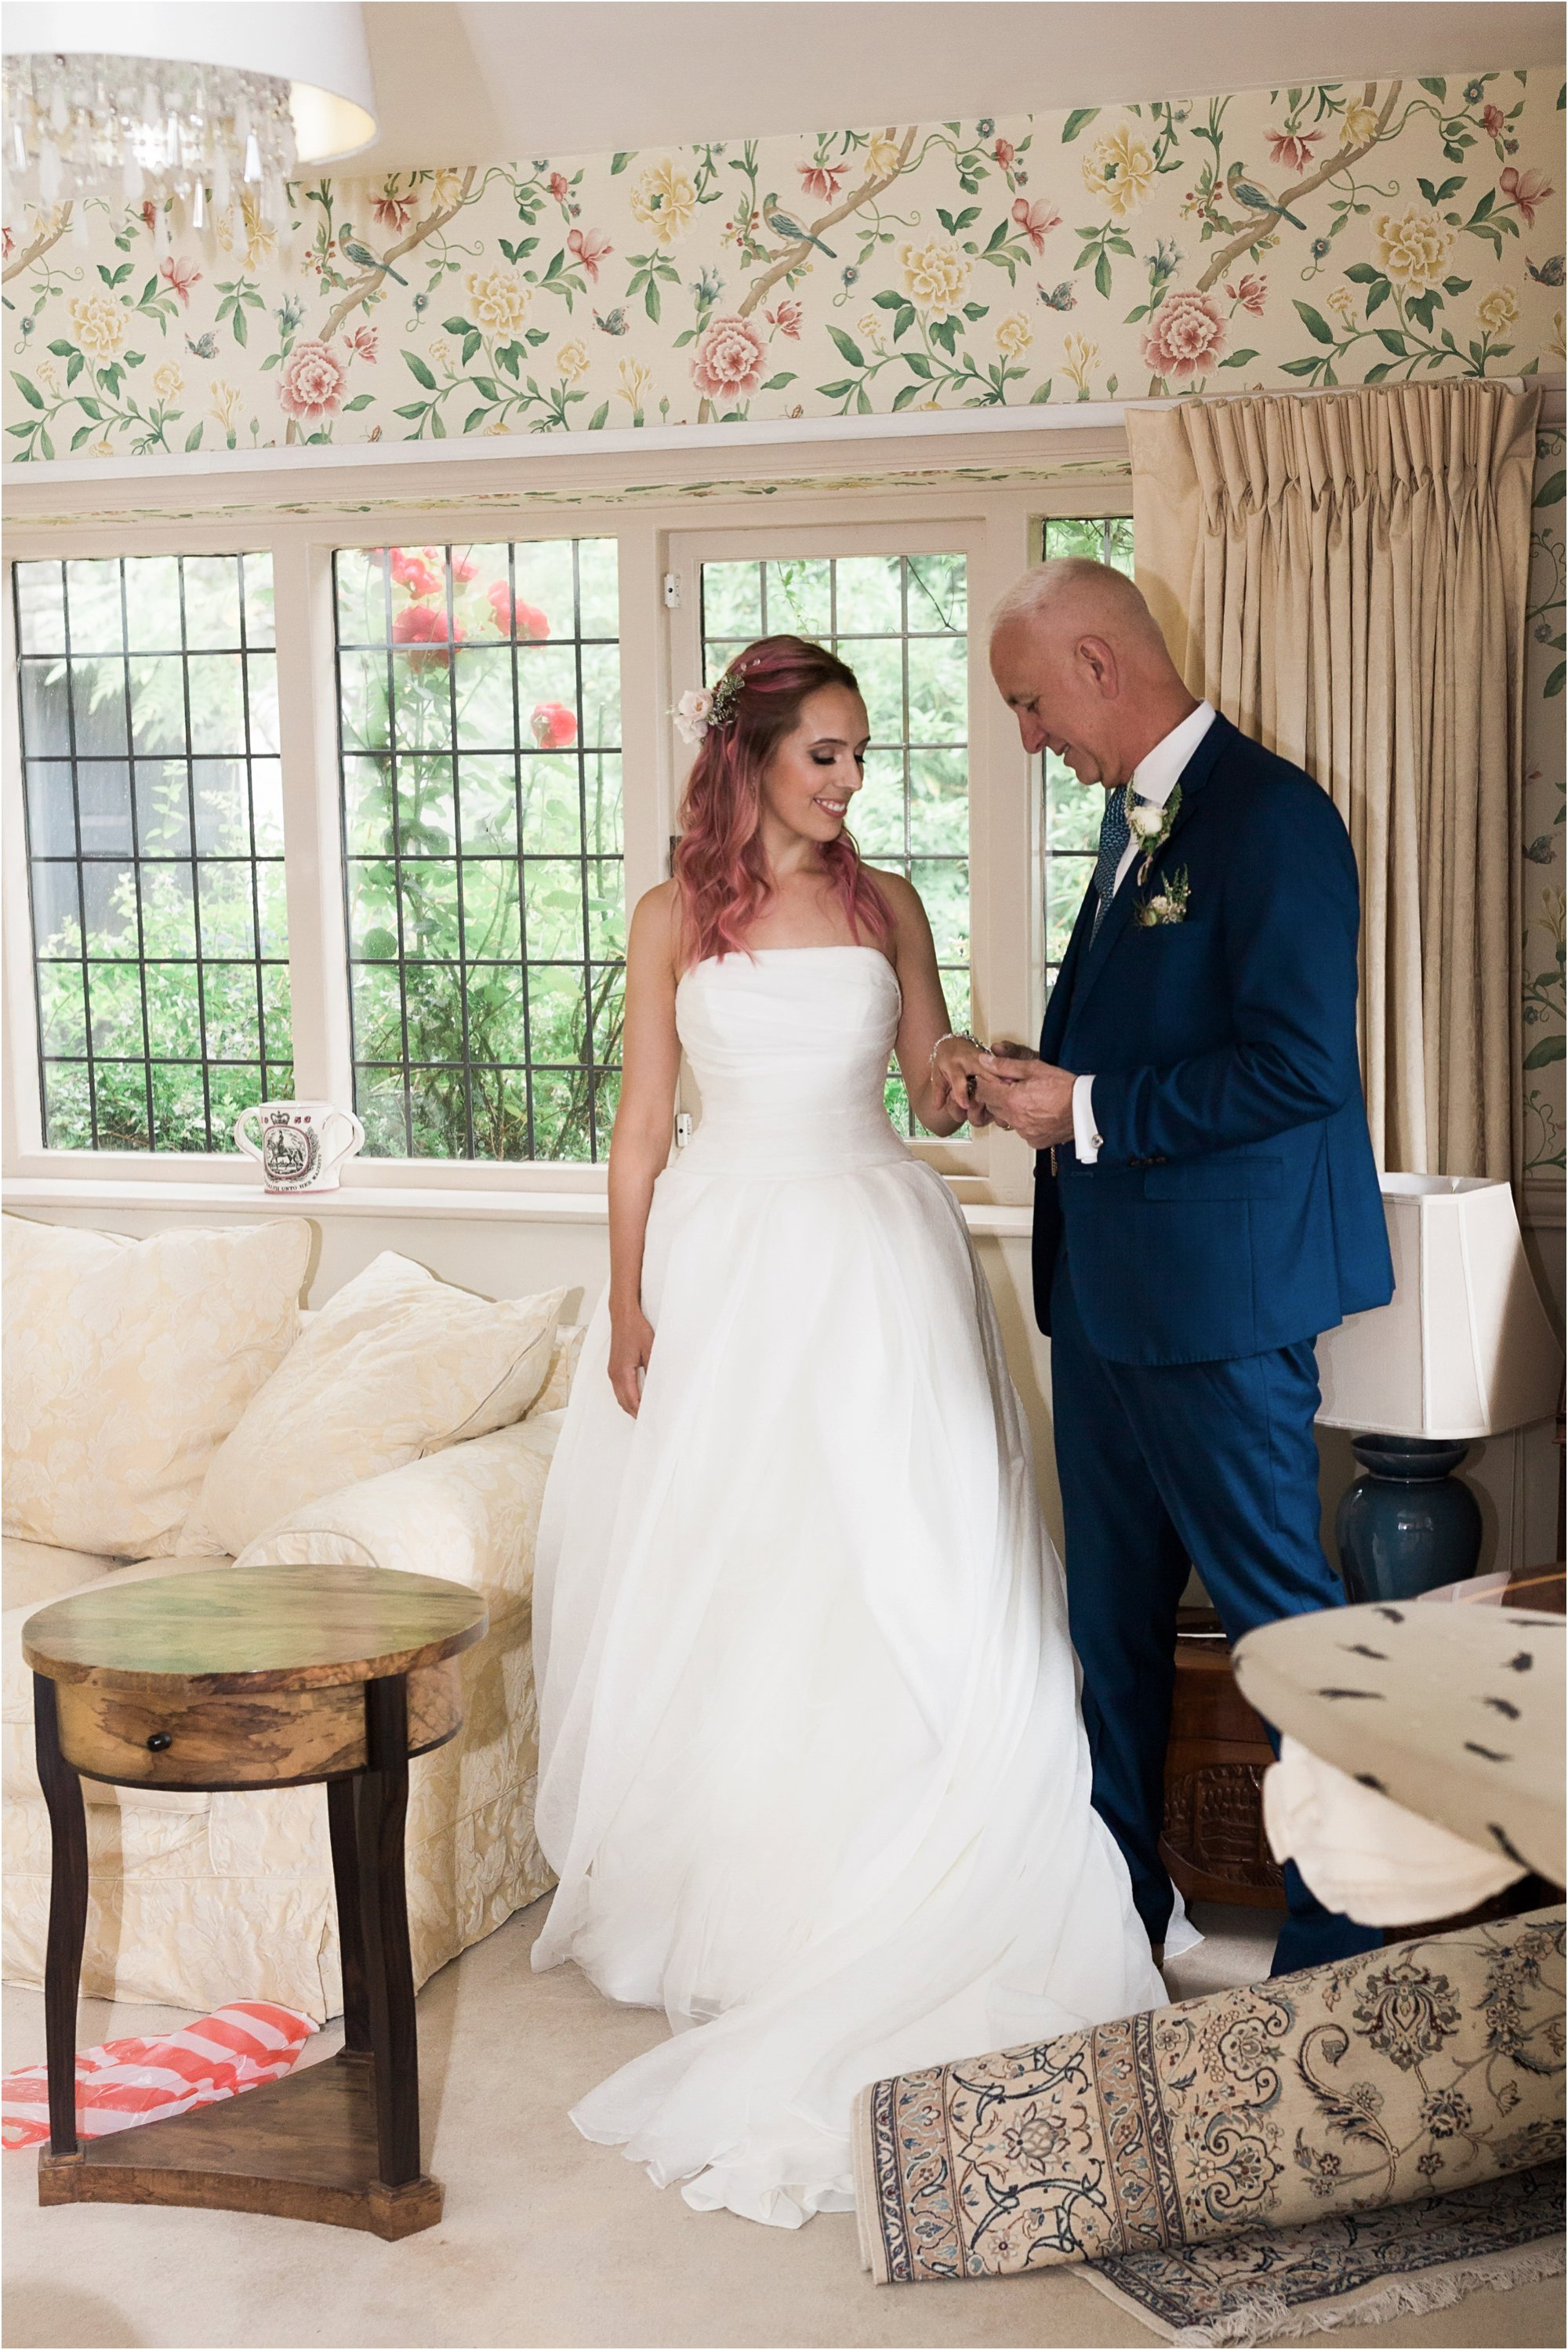 Bride with her dad on wedding morning